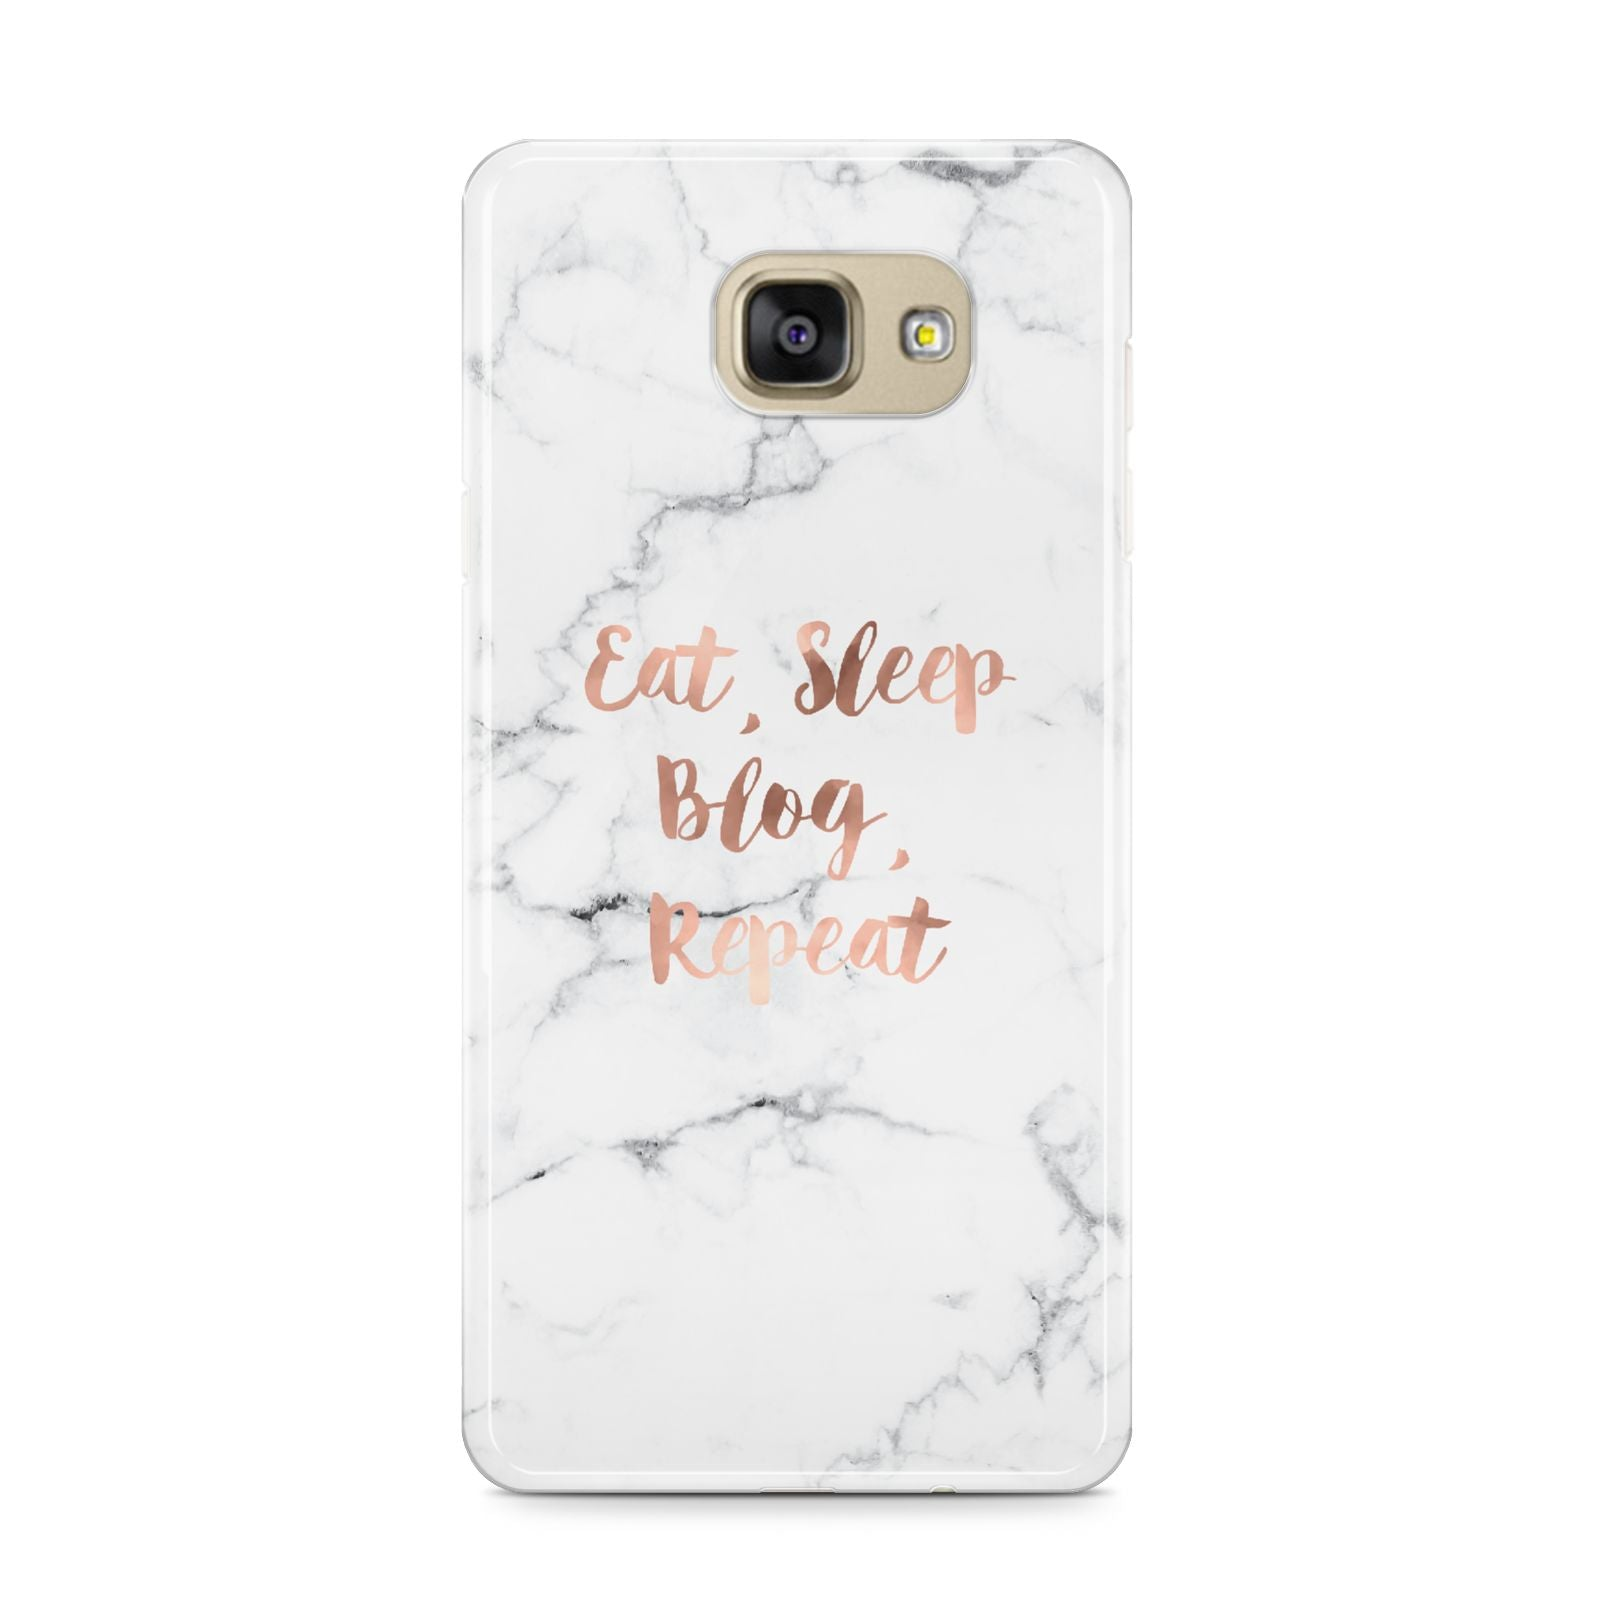 Eat Sleep Blog Repeat Marble Effect Samsung Galaxy A9 2016 Case on gold phone